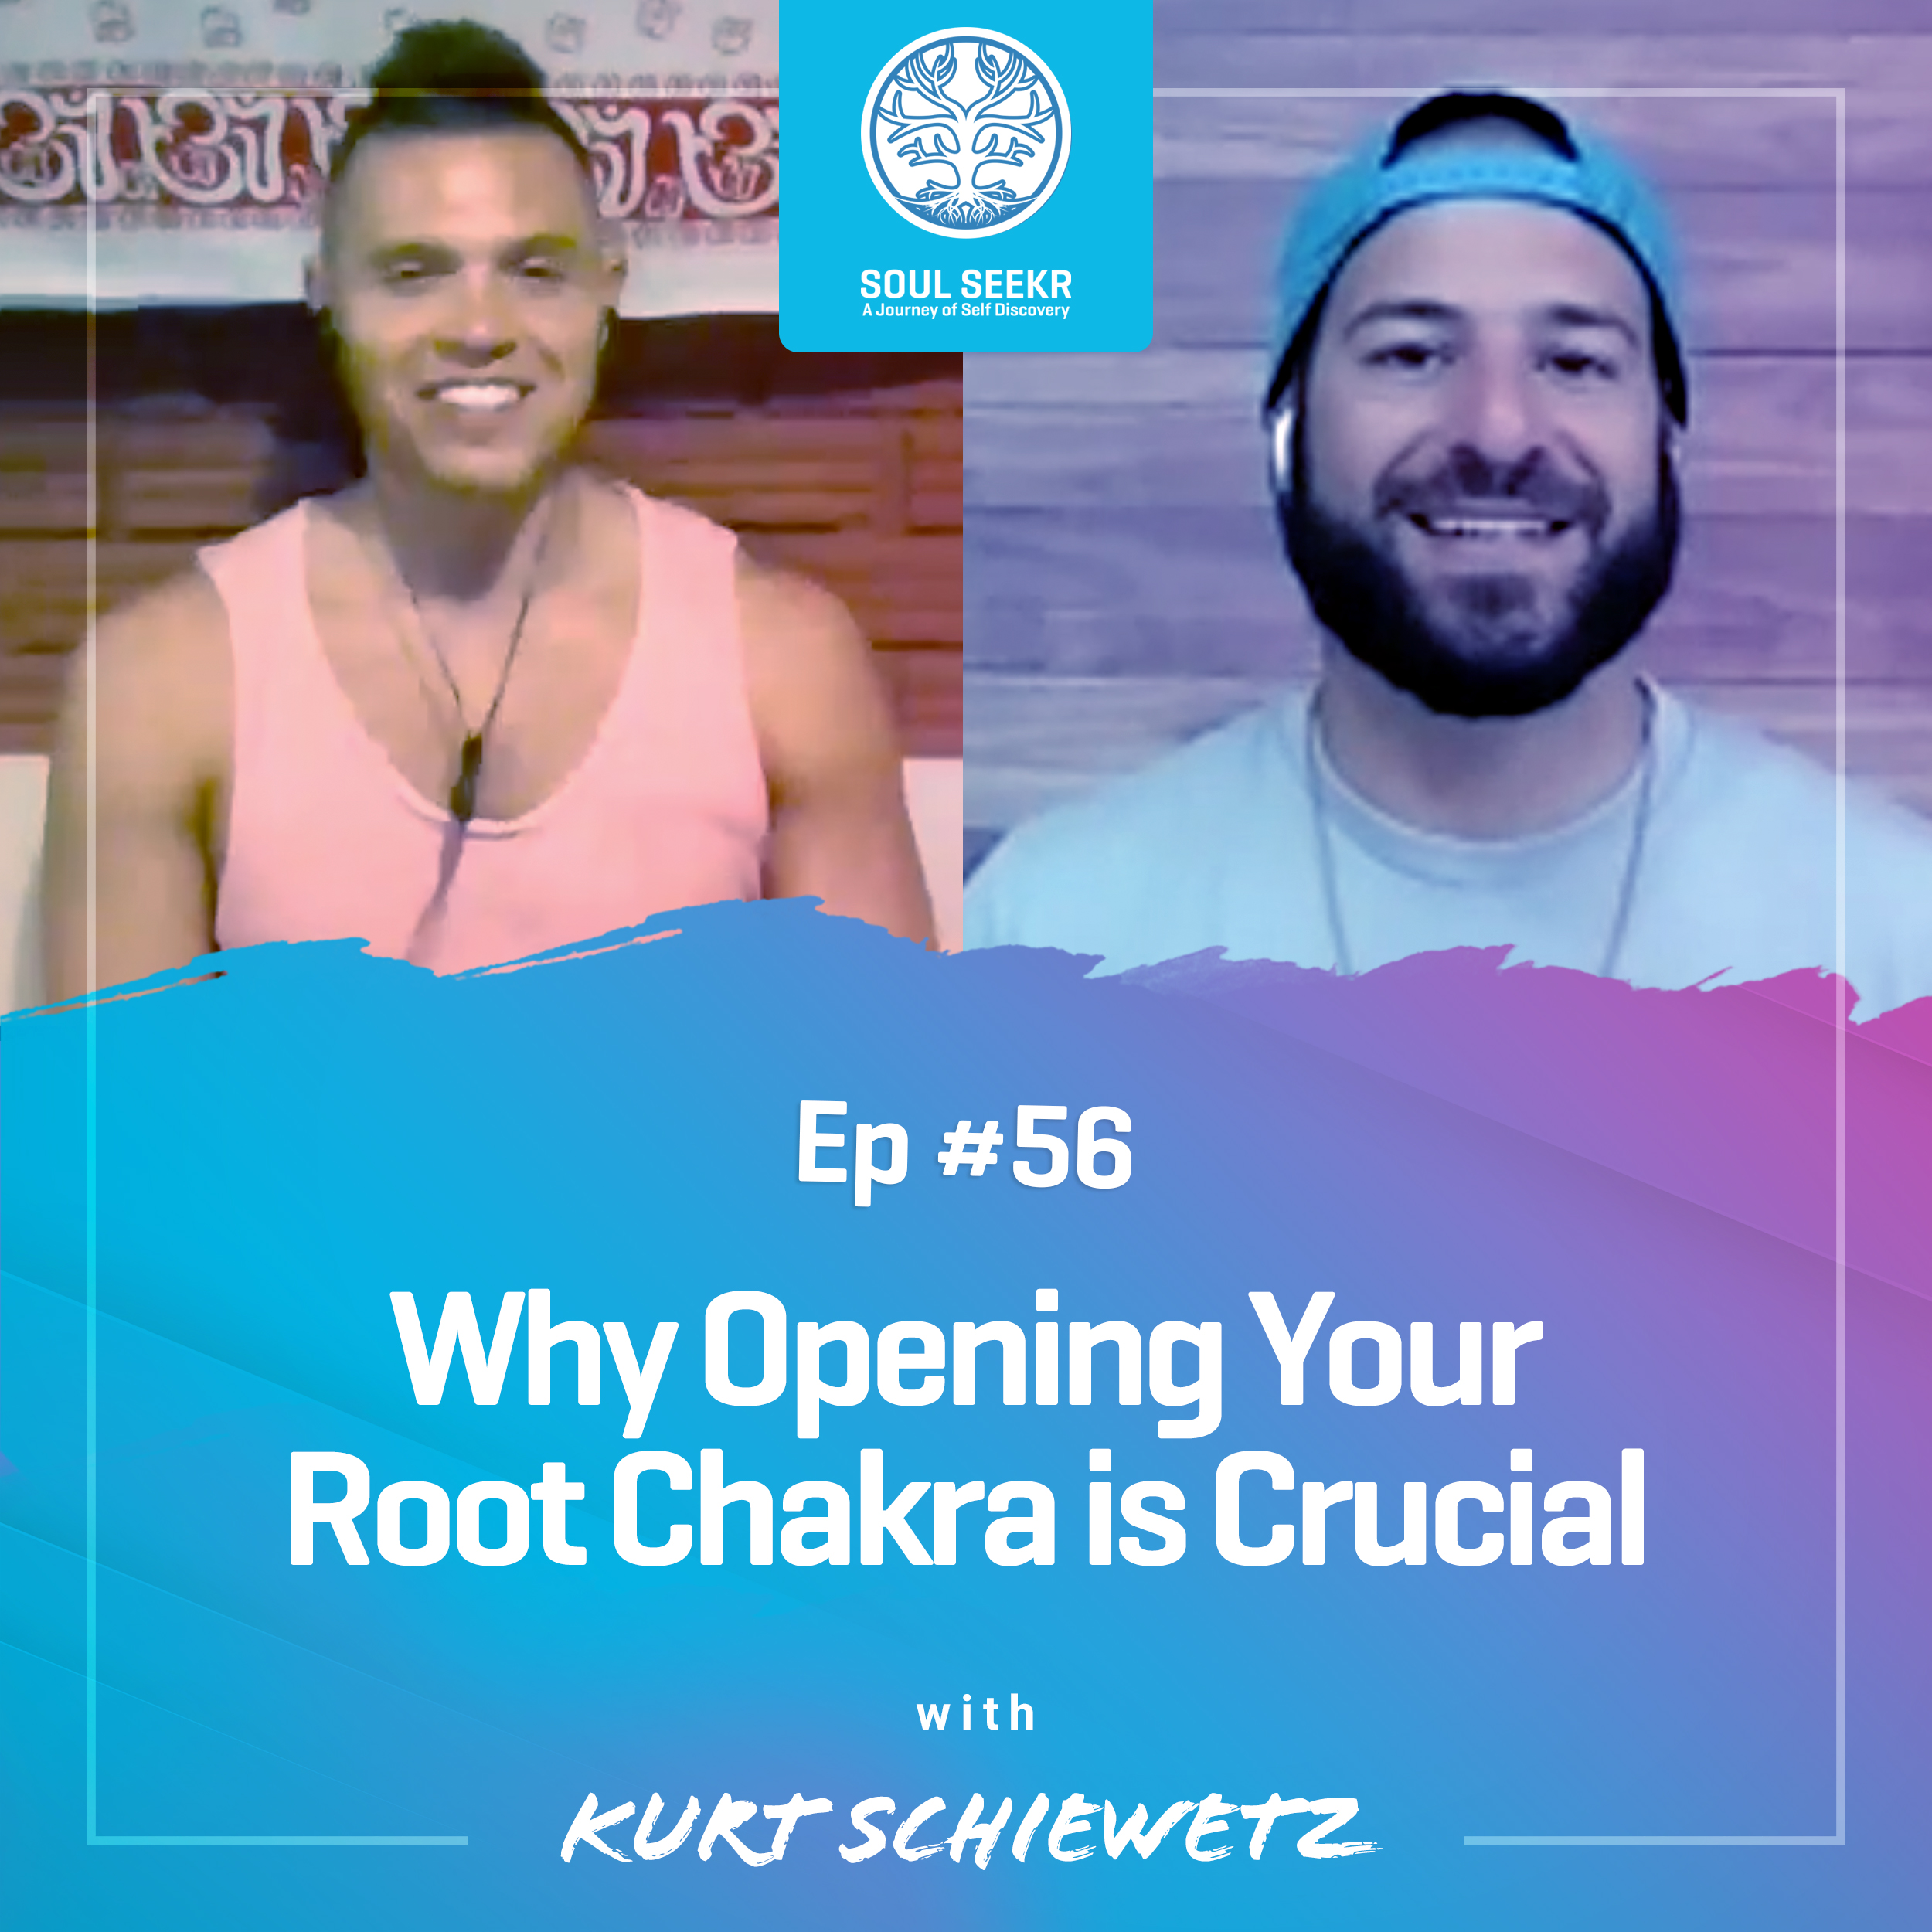 #56: Why Opening Your Root Chakra is Crucial with Kurt Schiewetz